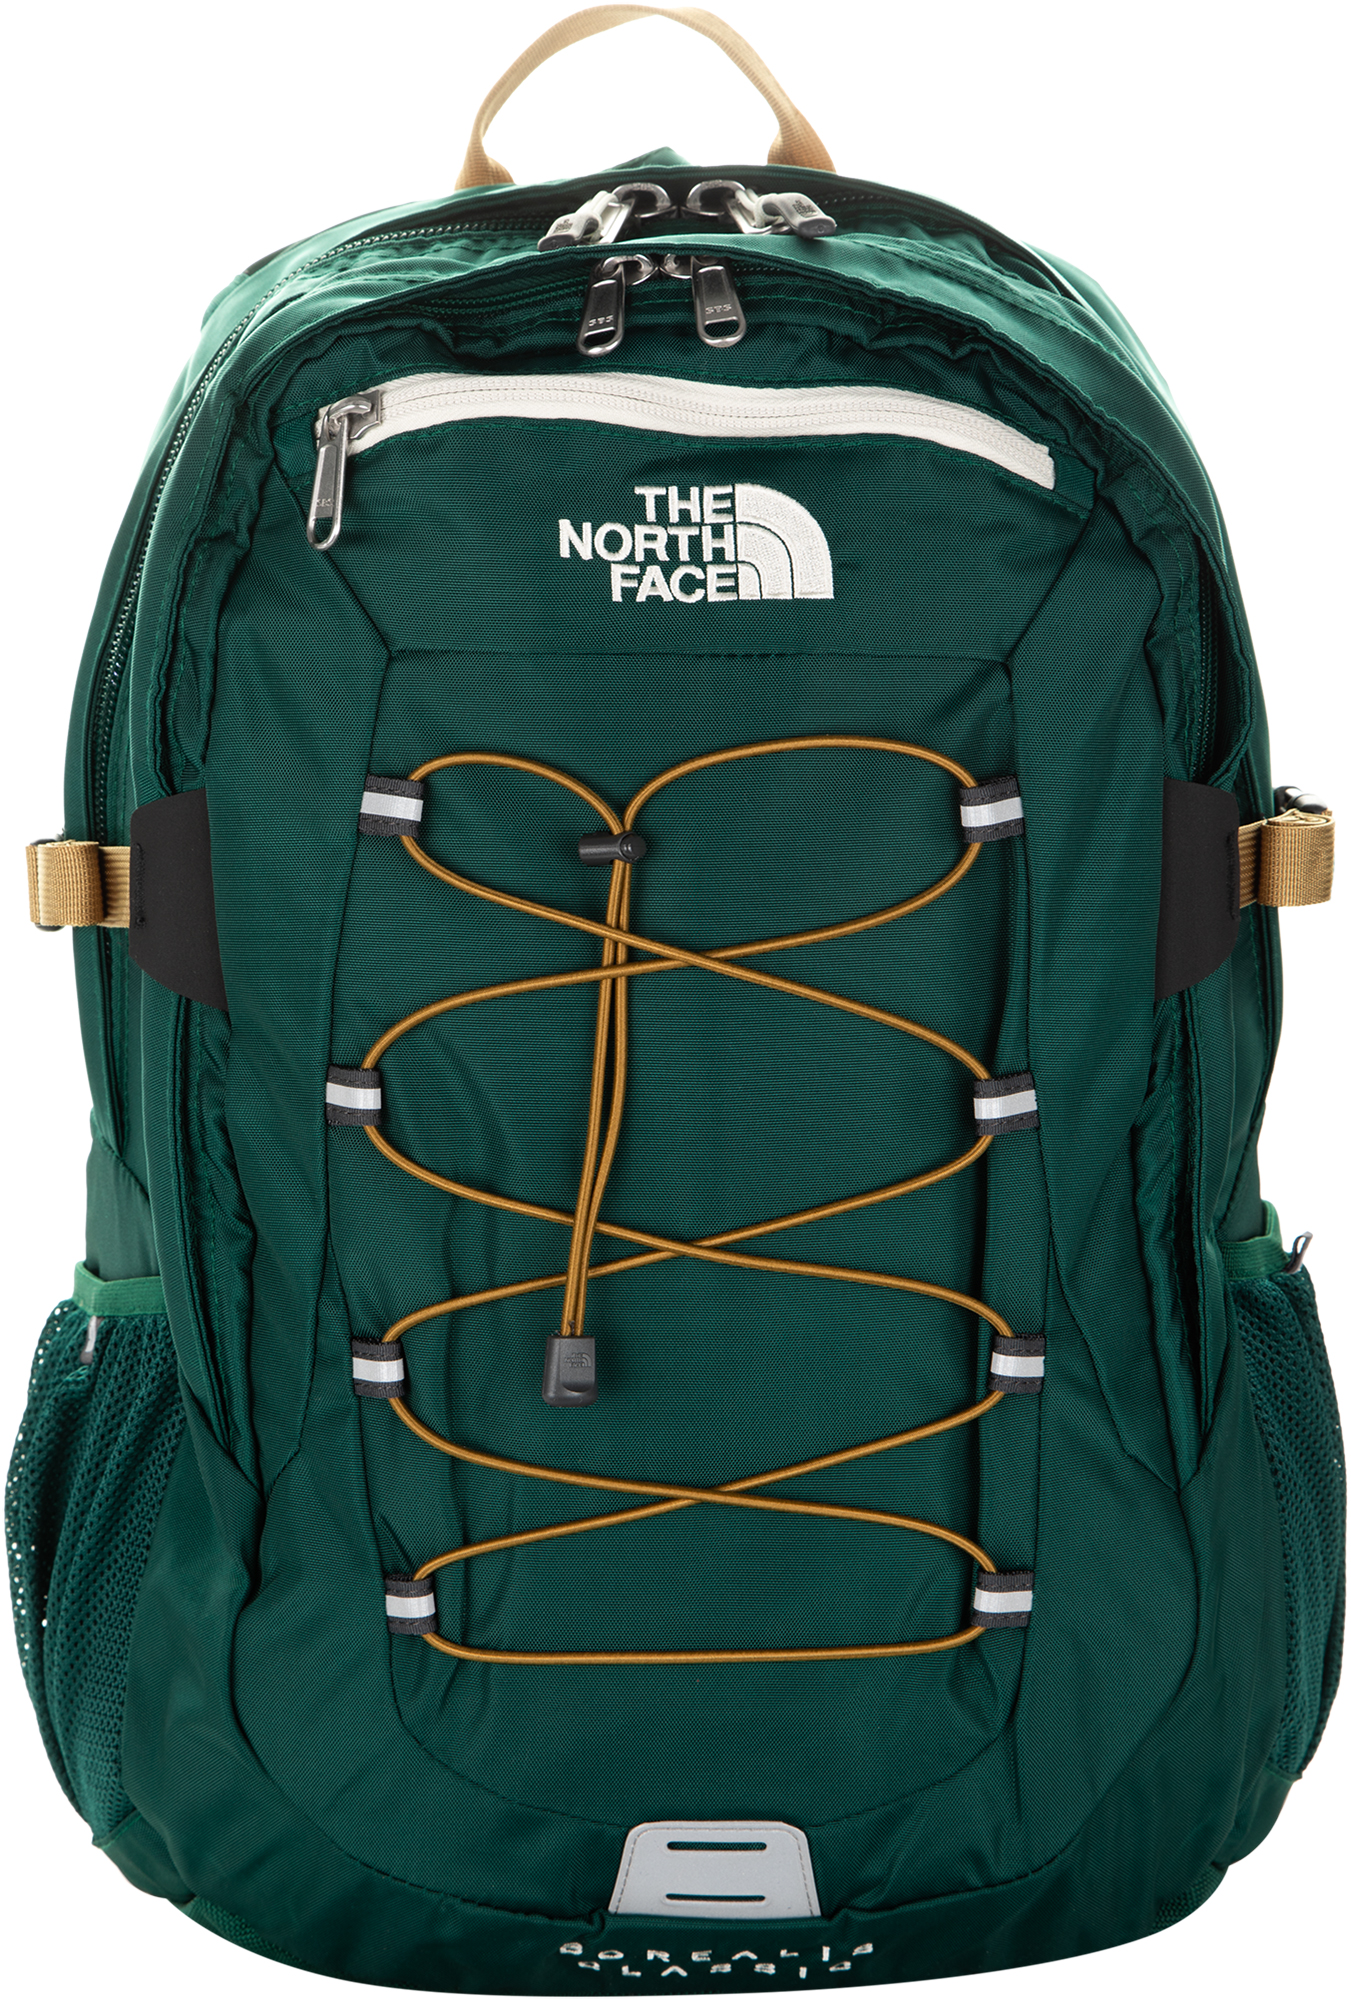 The North Face Рюкзак The North Face Borealis Classic стоимость